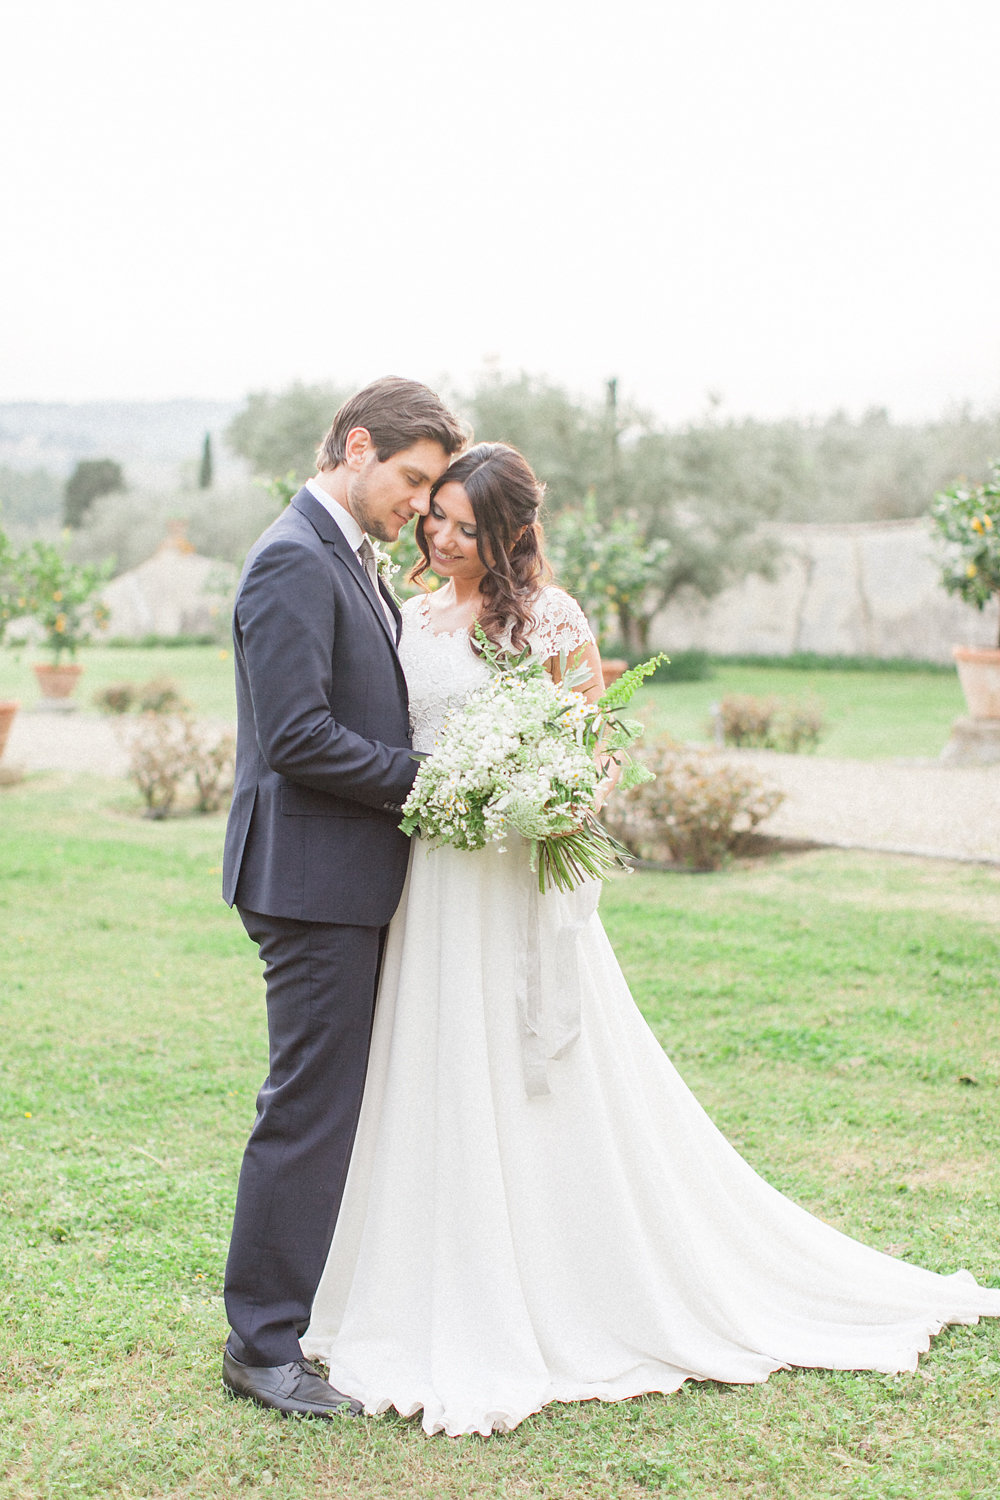 Tuscany Wedding Photographer Roberta Facchini 178